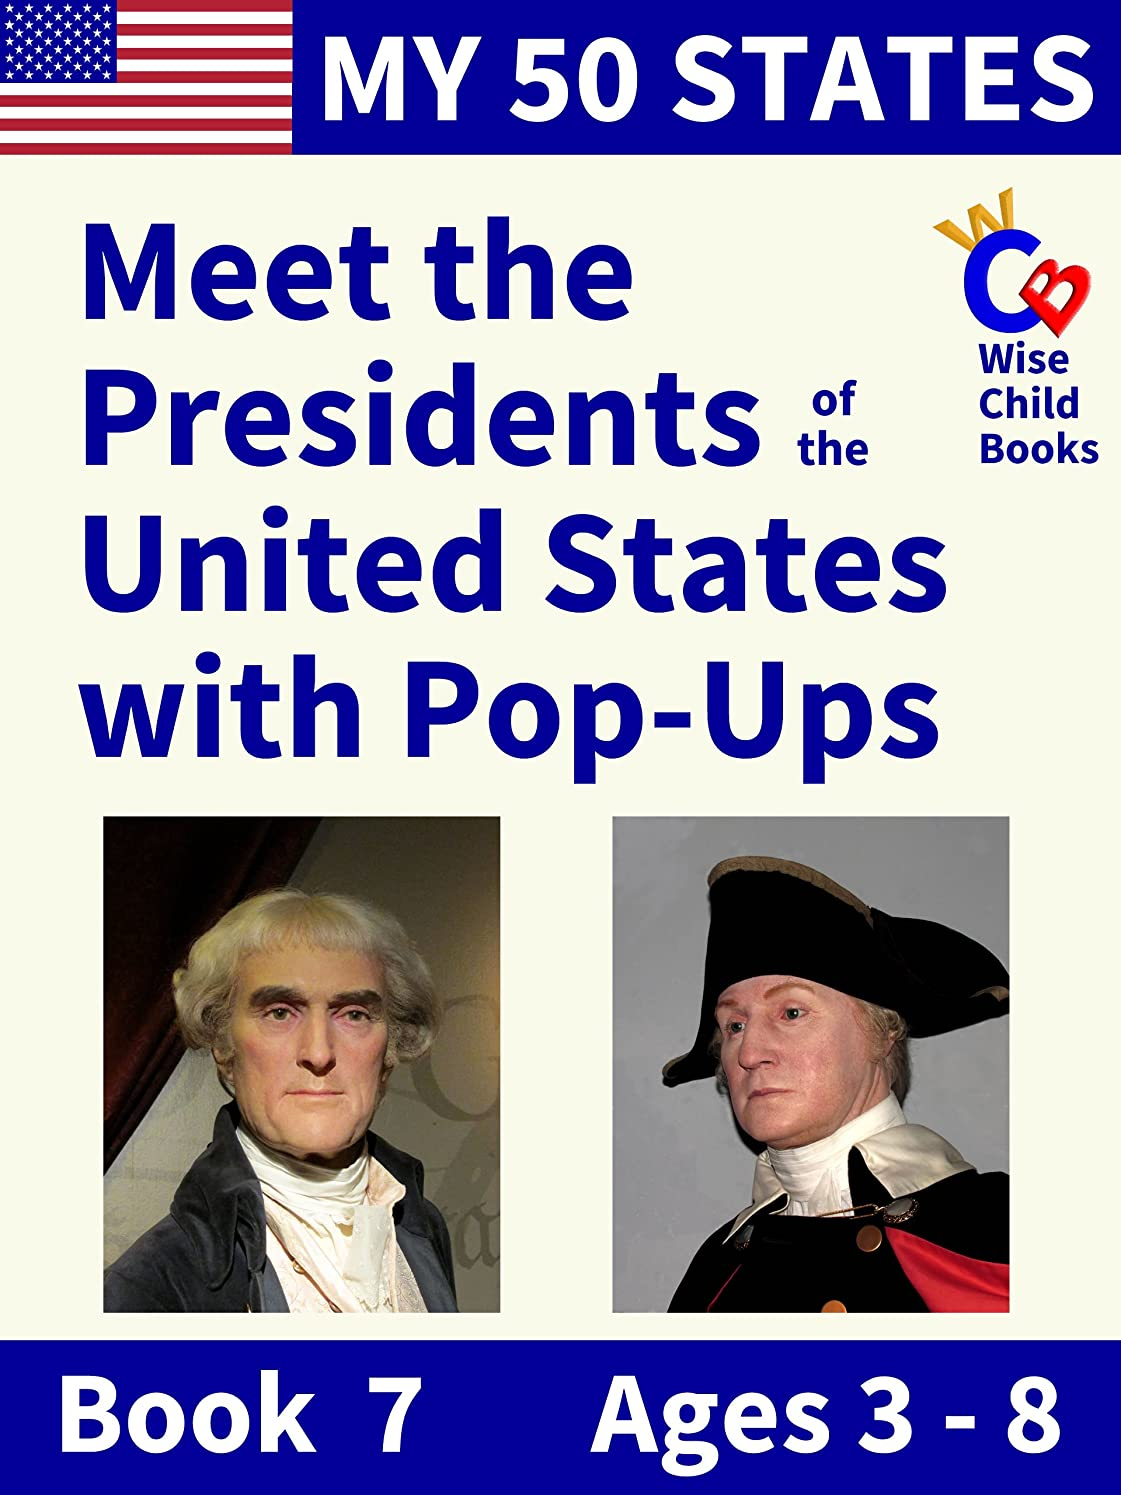 My 50 States - Book 7: Meet the Presidents of the United States with Pop-Ups (English Edition)